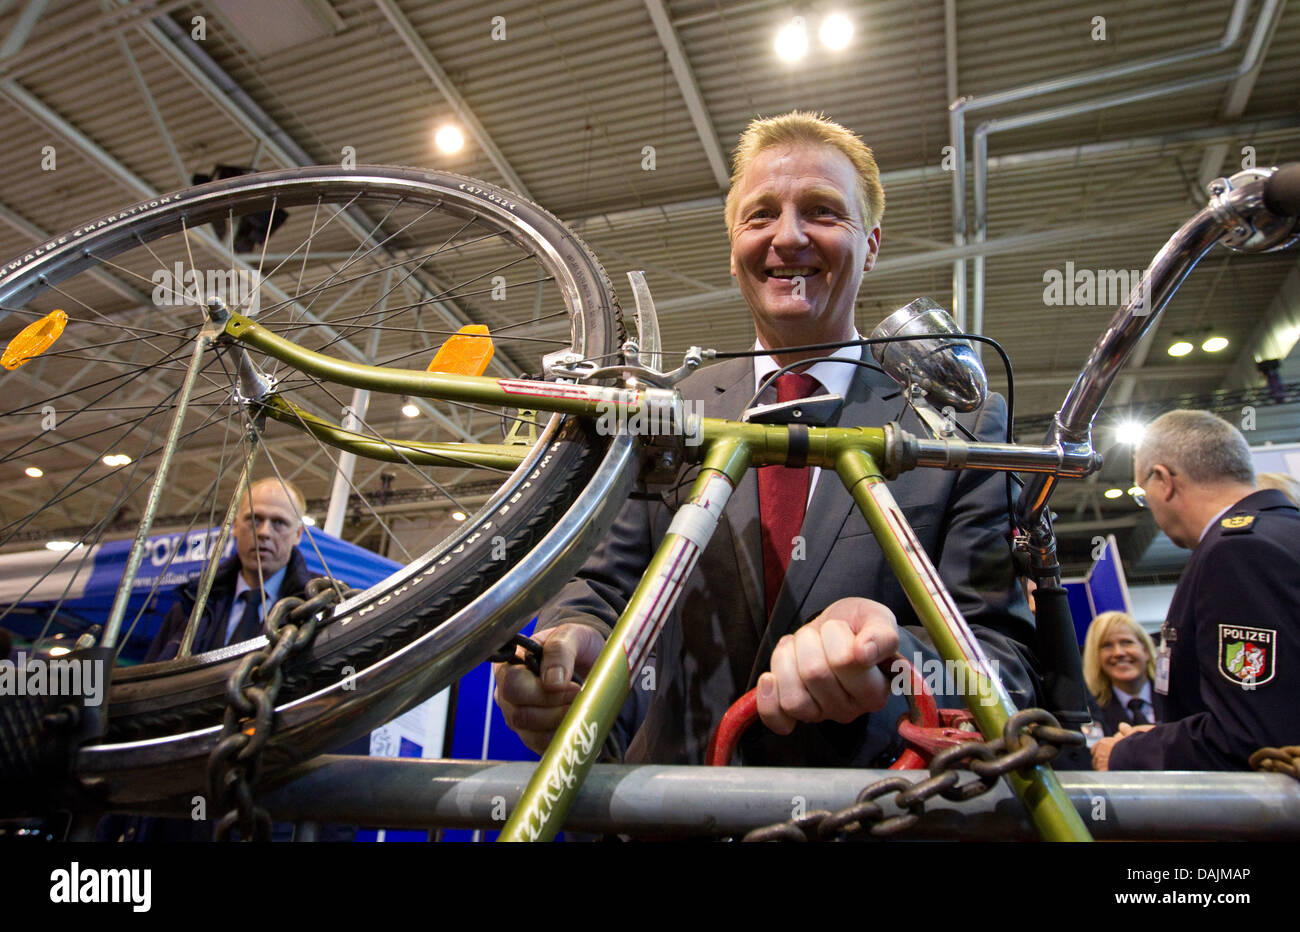 North Rhine-Westphalia's Interior Minister Ralf Jaeger poses with a locked bike at the police trade show Ipomex Stock Photo